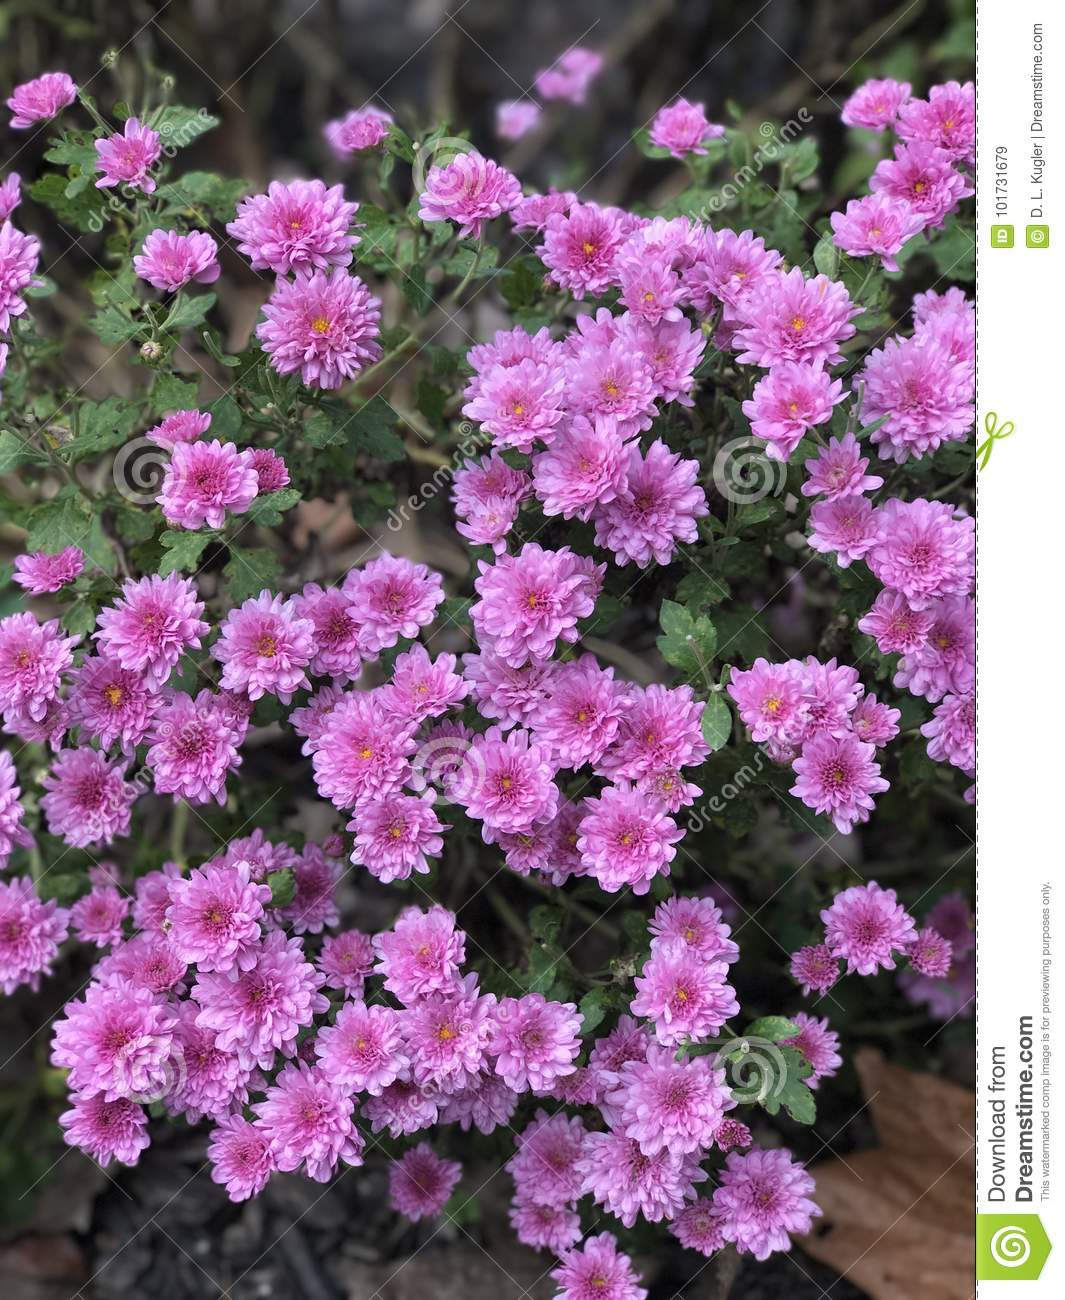 Pretty pink mums stock image image of throughout autumn 101731679 mums are a favorite flower in the fall garden these perennial beauties are low maintenance and color the garden beds or container gardens all throughout izmirmasajfo